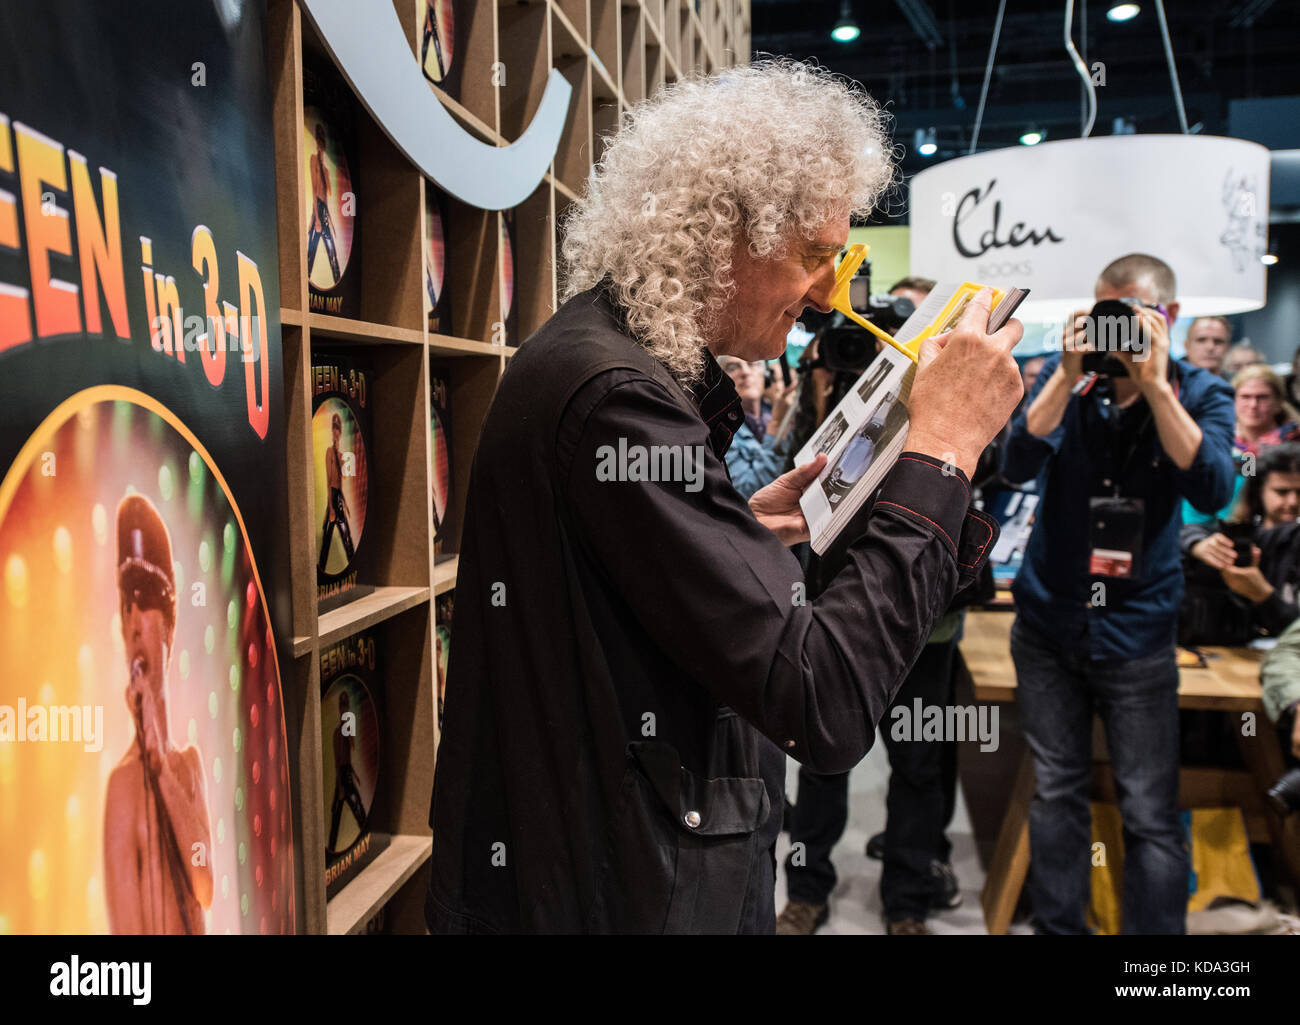 Frankfurt am Main, Germany. 12th Oct, 2017. Guitarrist Brian May of Queen looking at pictures in his book 'Queen - Stock Image